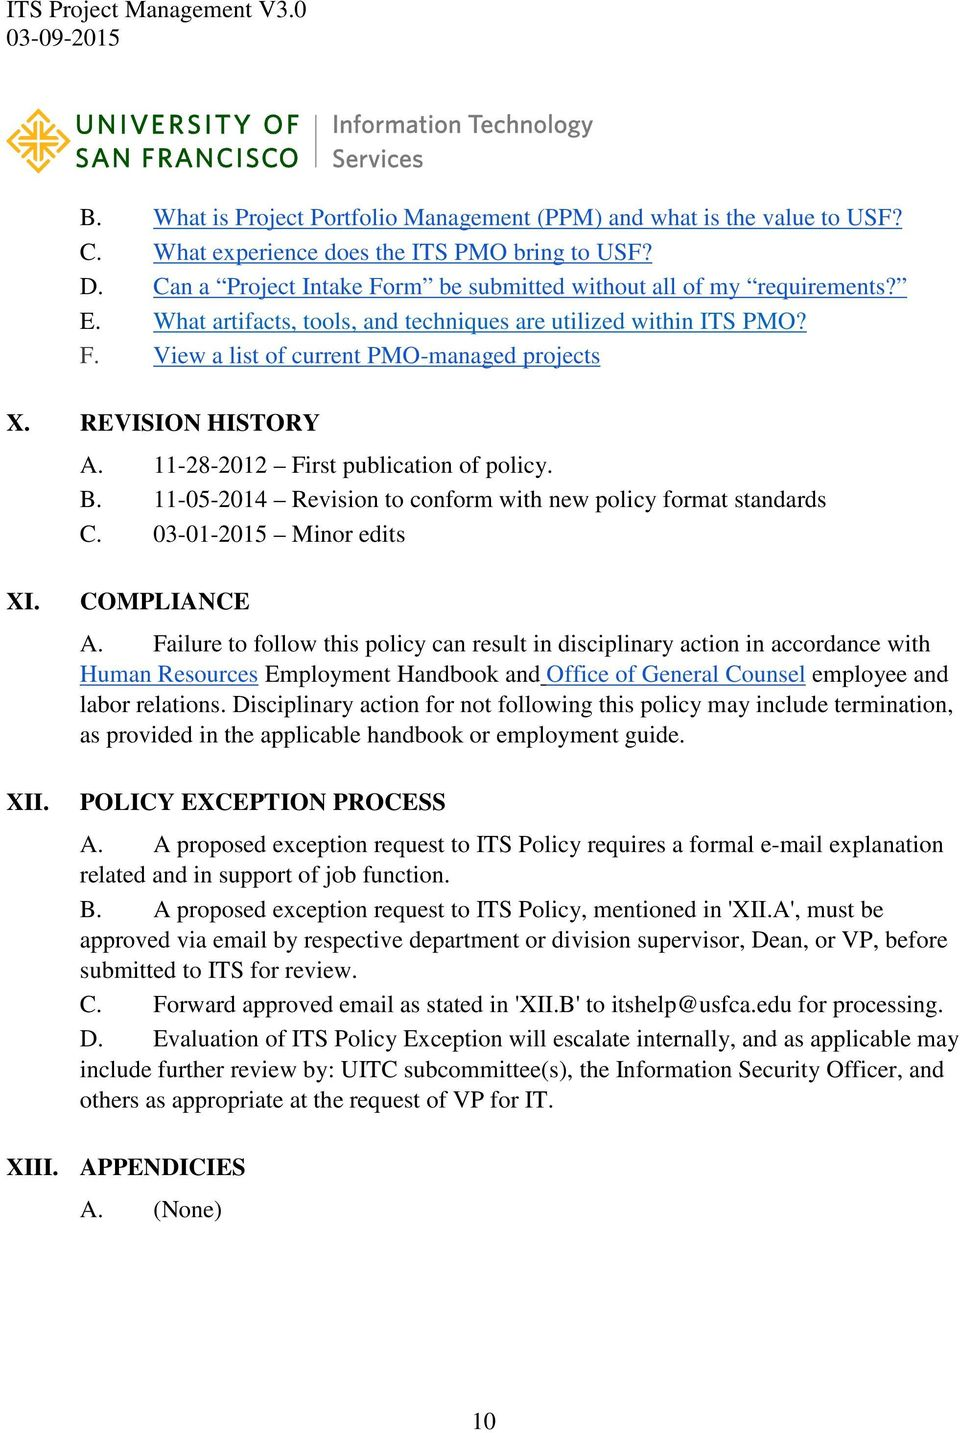 11-05-2014 Revision to conform with new policy format standards C. 03-01-2015 Minor edits XI. XII. COMPLIANCE A.